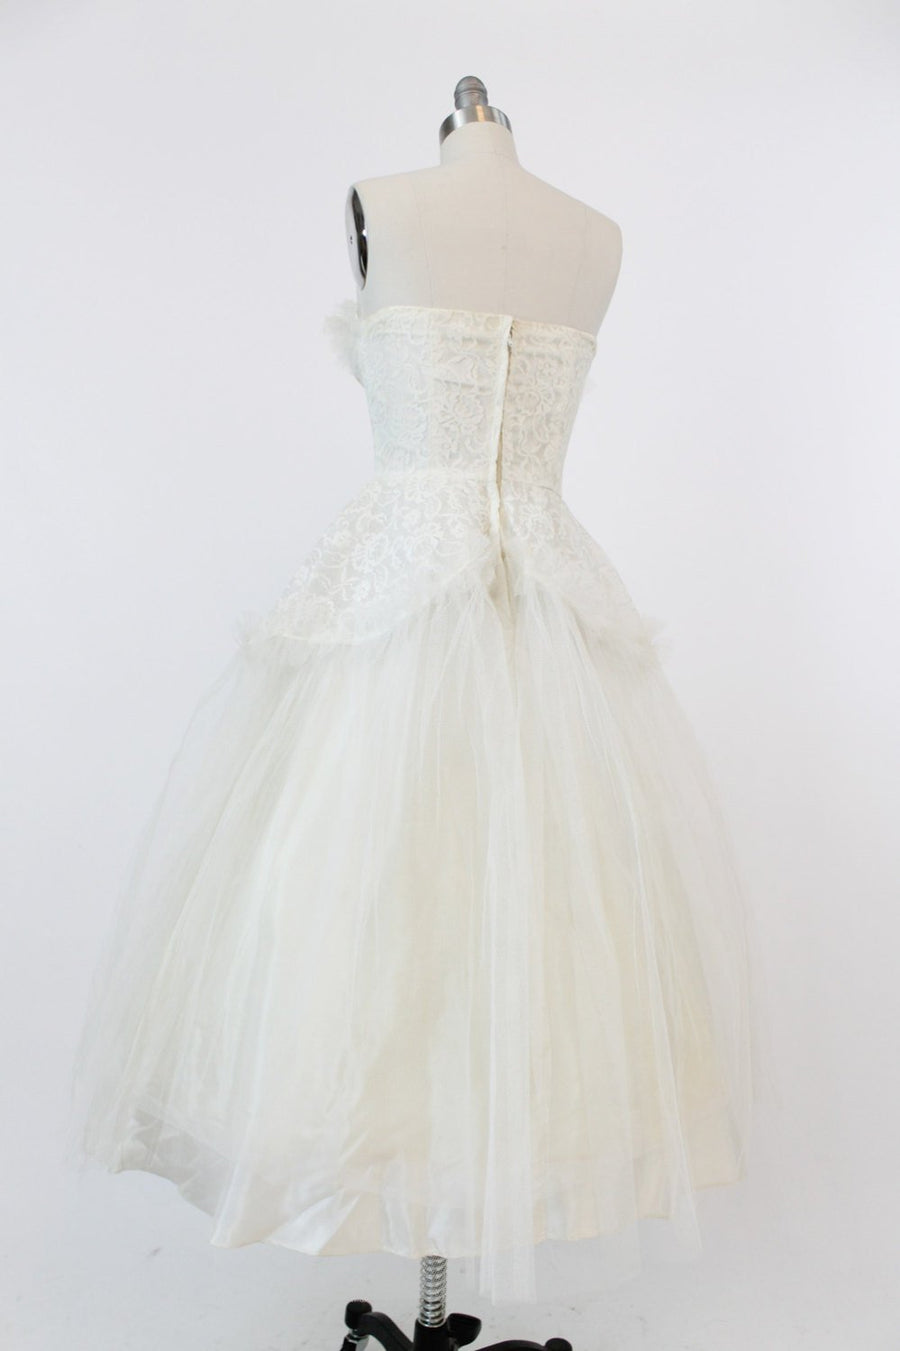 50s Wedding Dress XS / 1950s Vintage Dress Lace Tulle Strapless Gown / Midnight Gardenia Dress